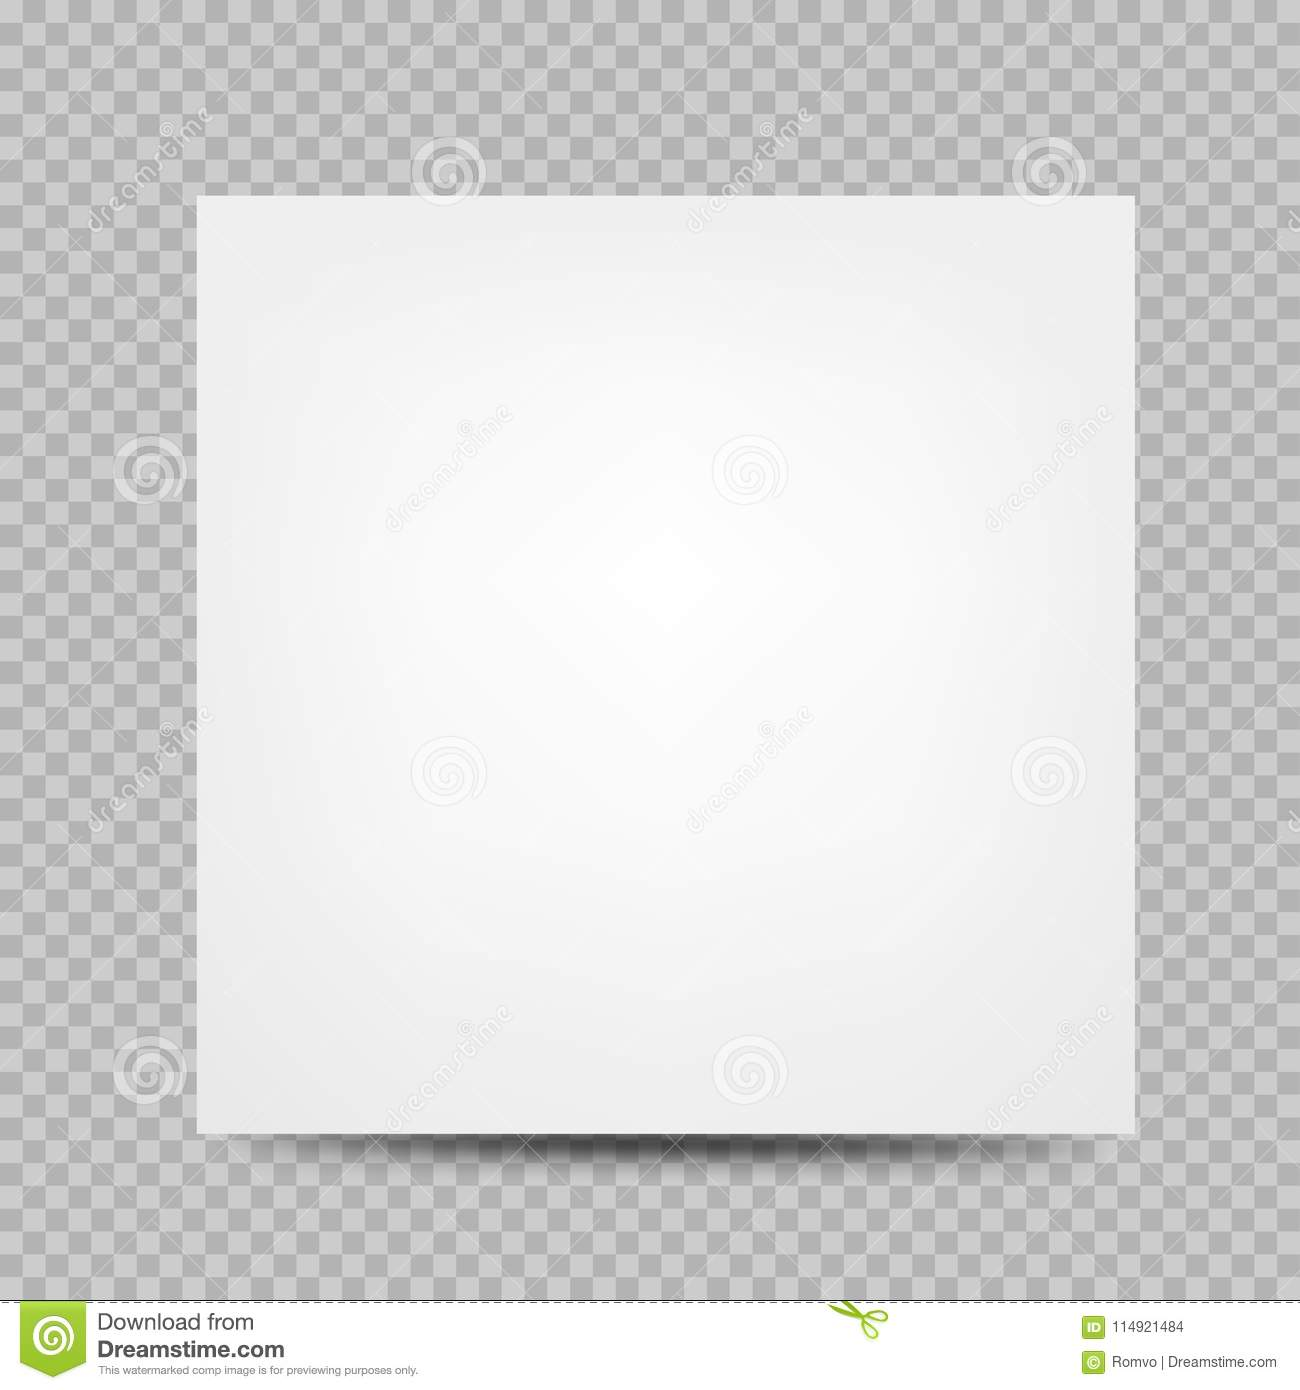 White Paper Square Banner Cover Empty Template With Shadow On Transparent Background